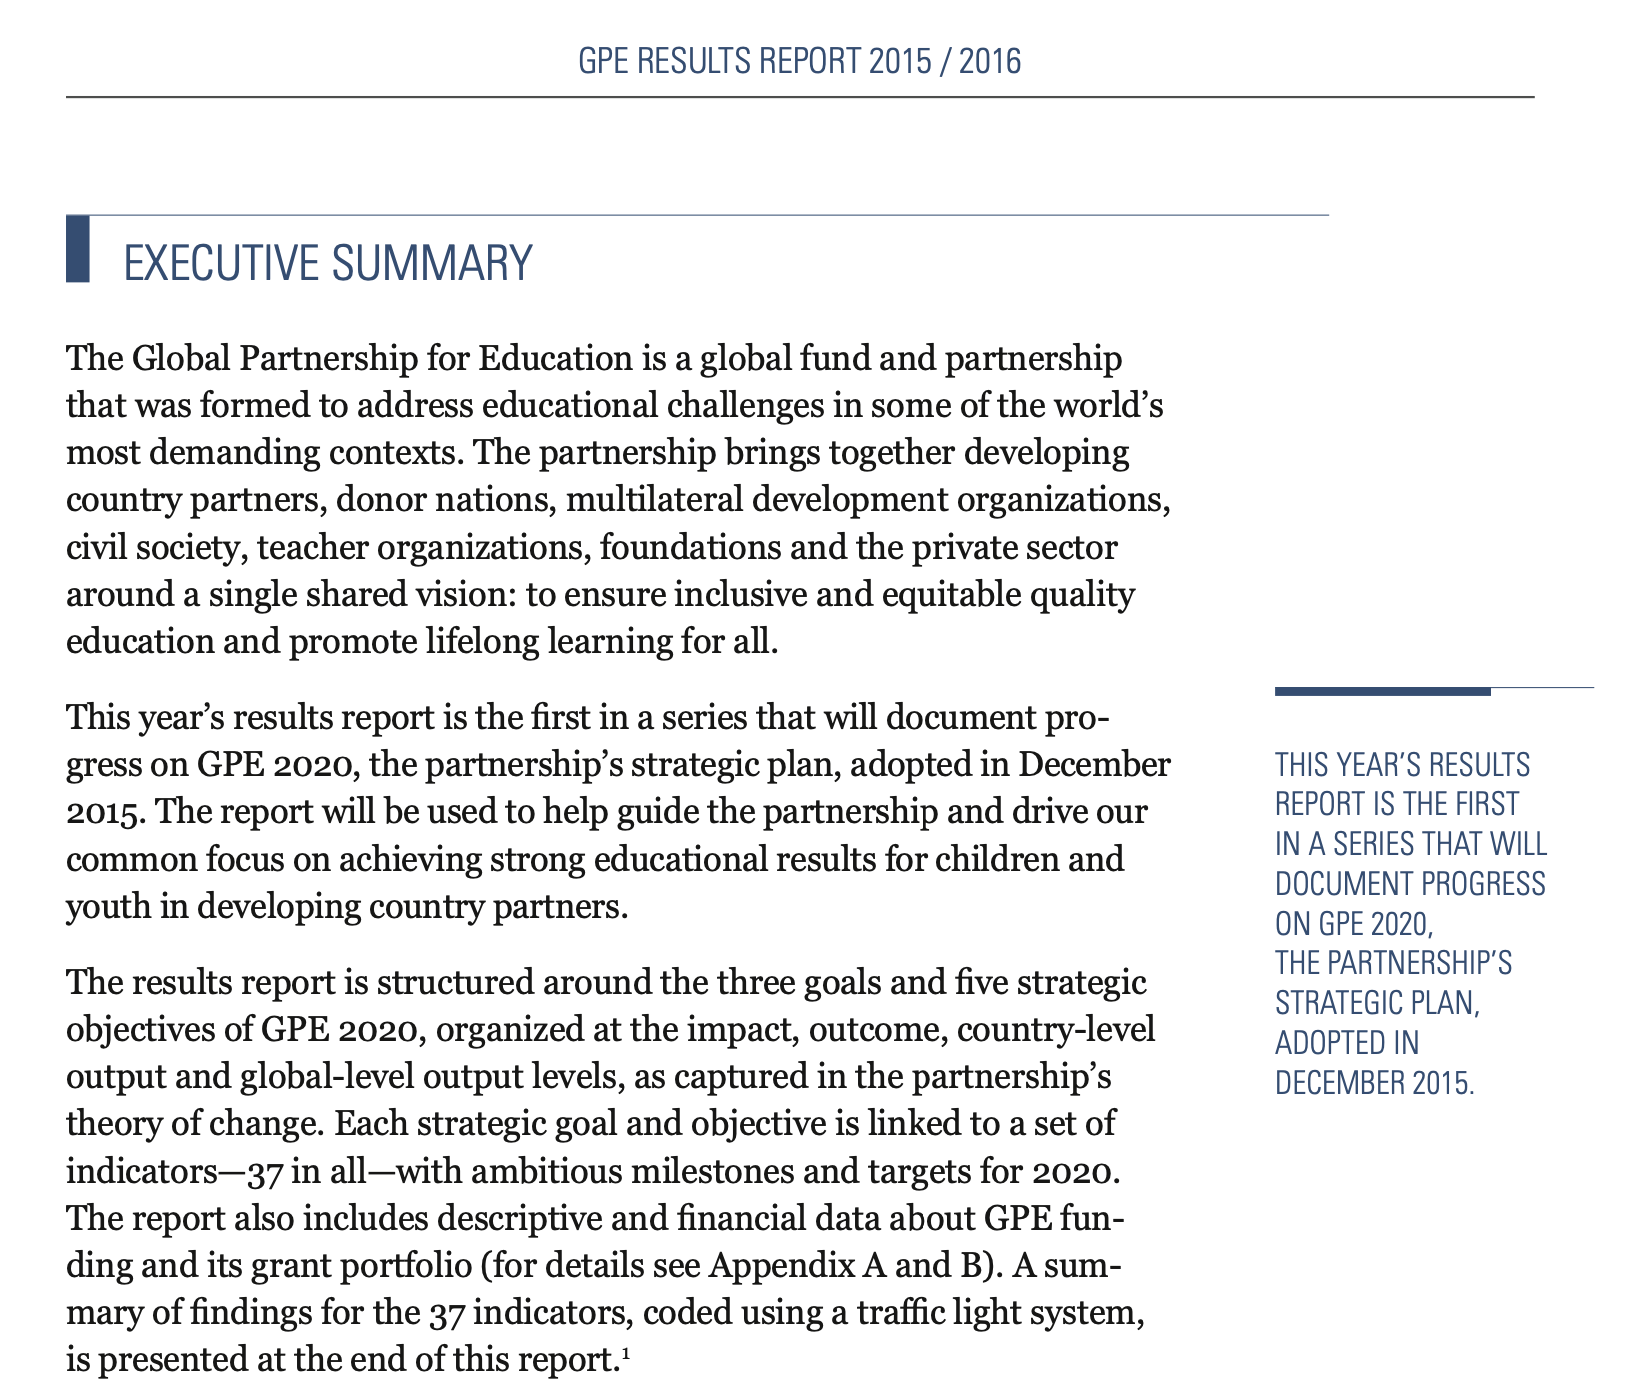 An Executive Summary of the Global Partnership for Education's Results Report 2015-2016